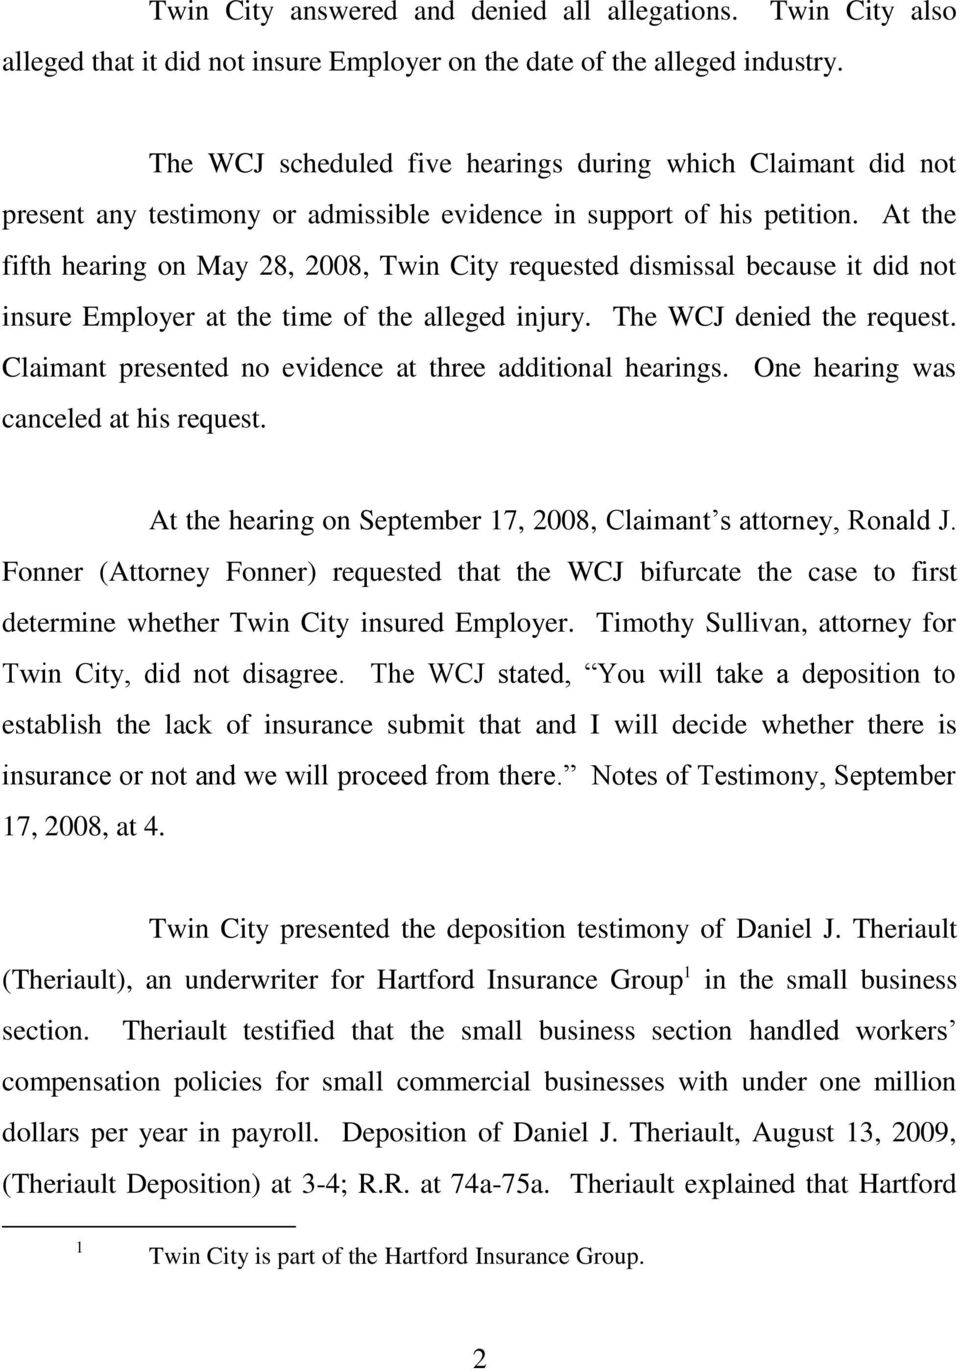 At the fifth hearing on May 28, 2008, Twin City requested dismissal because it did not insure Employer at the time of the alleged injury. The WCJ denied the request.